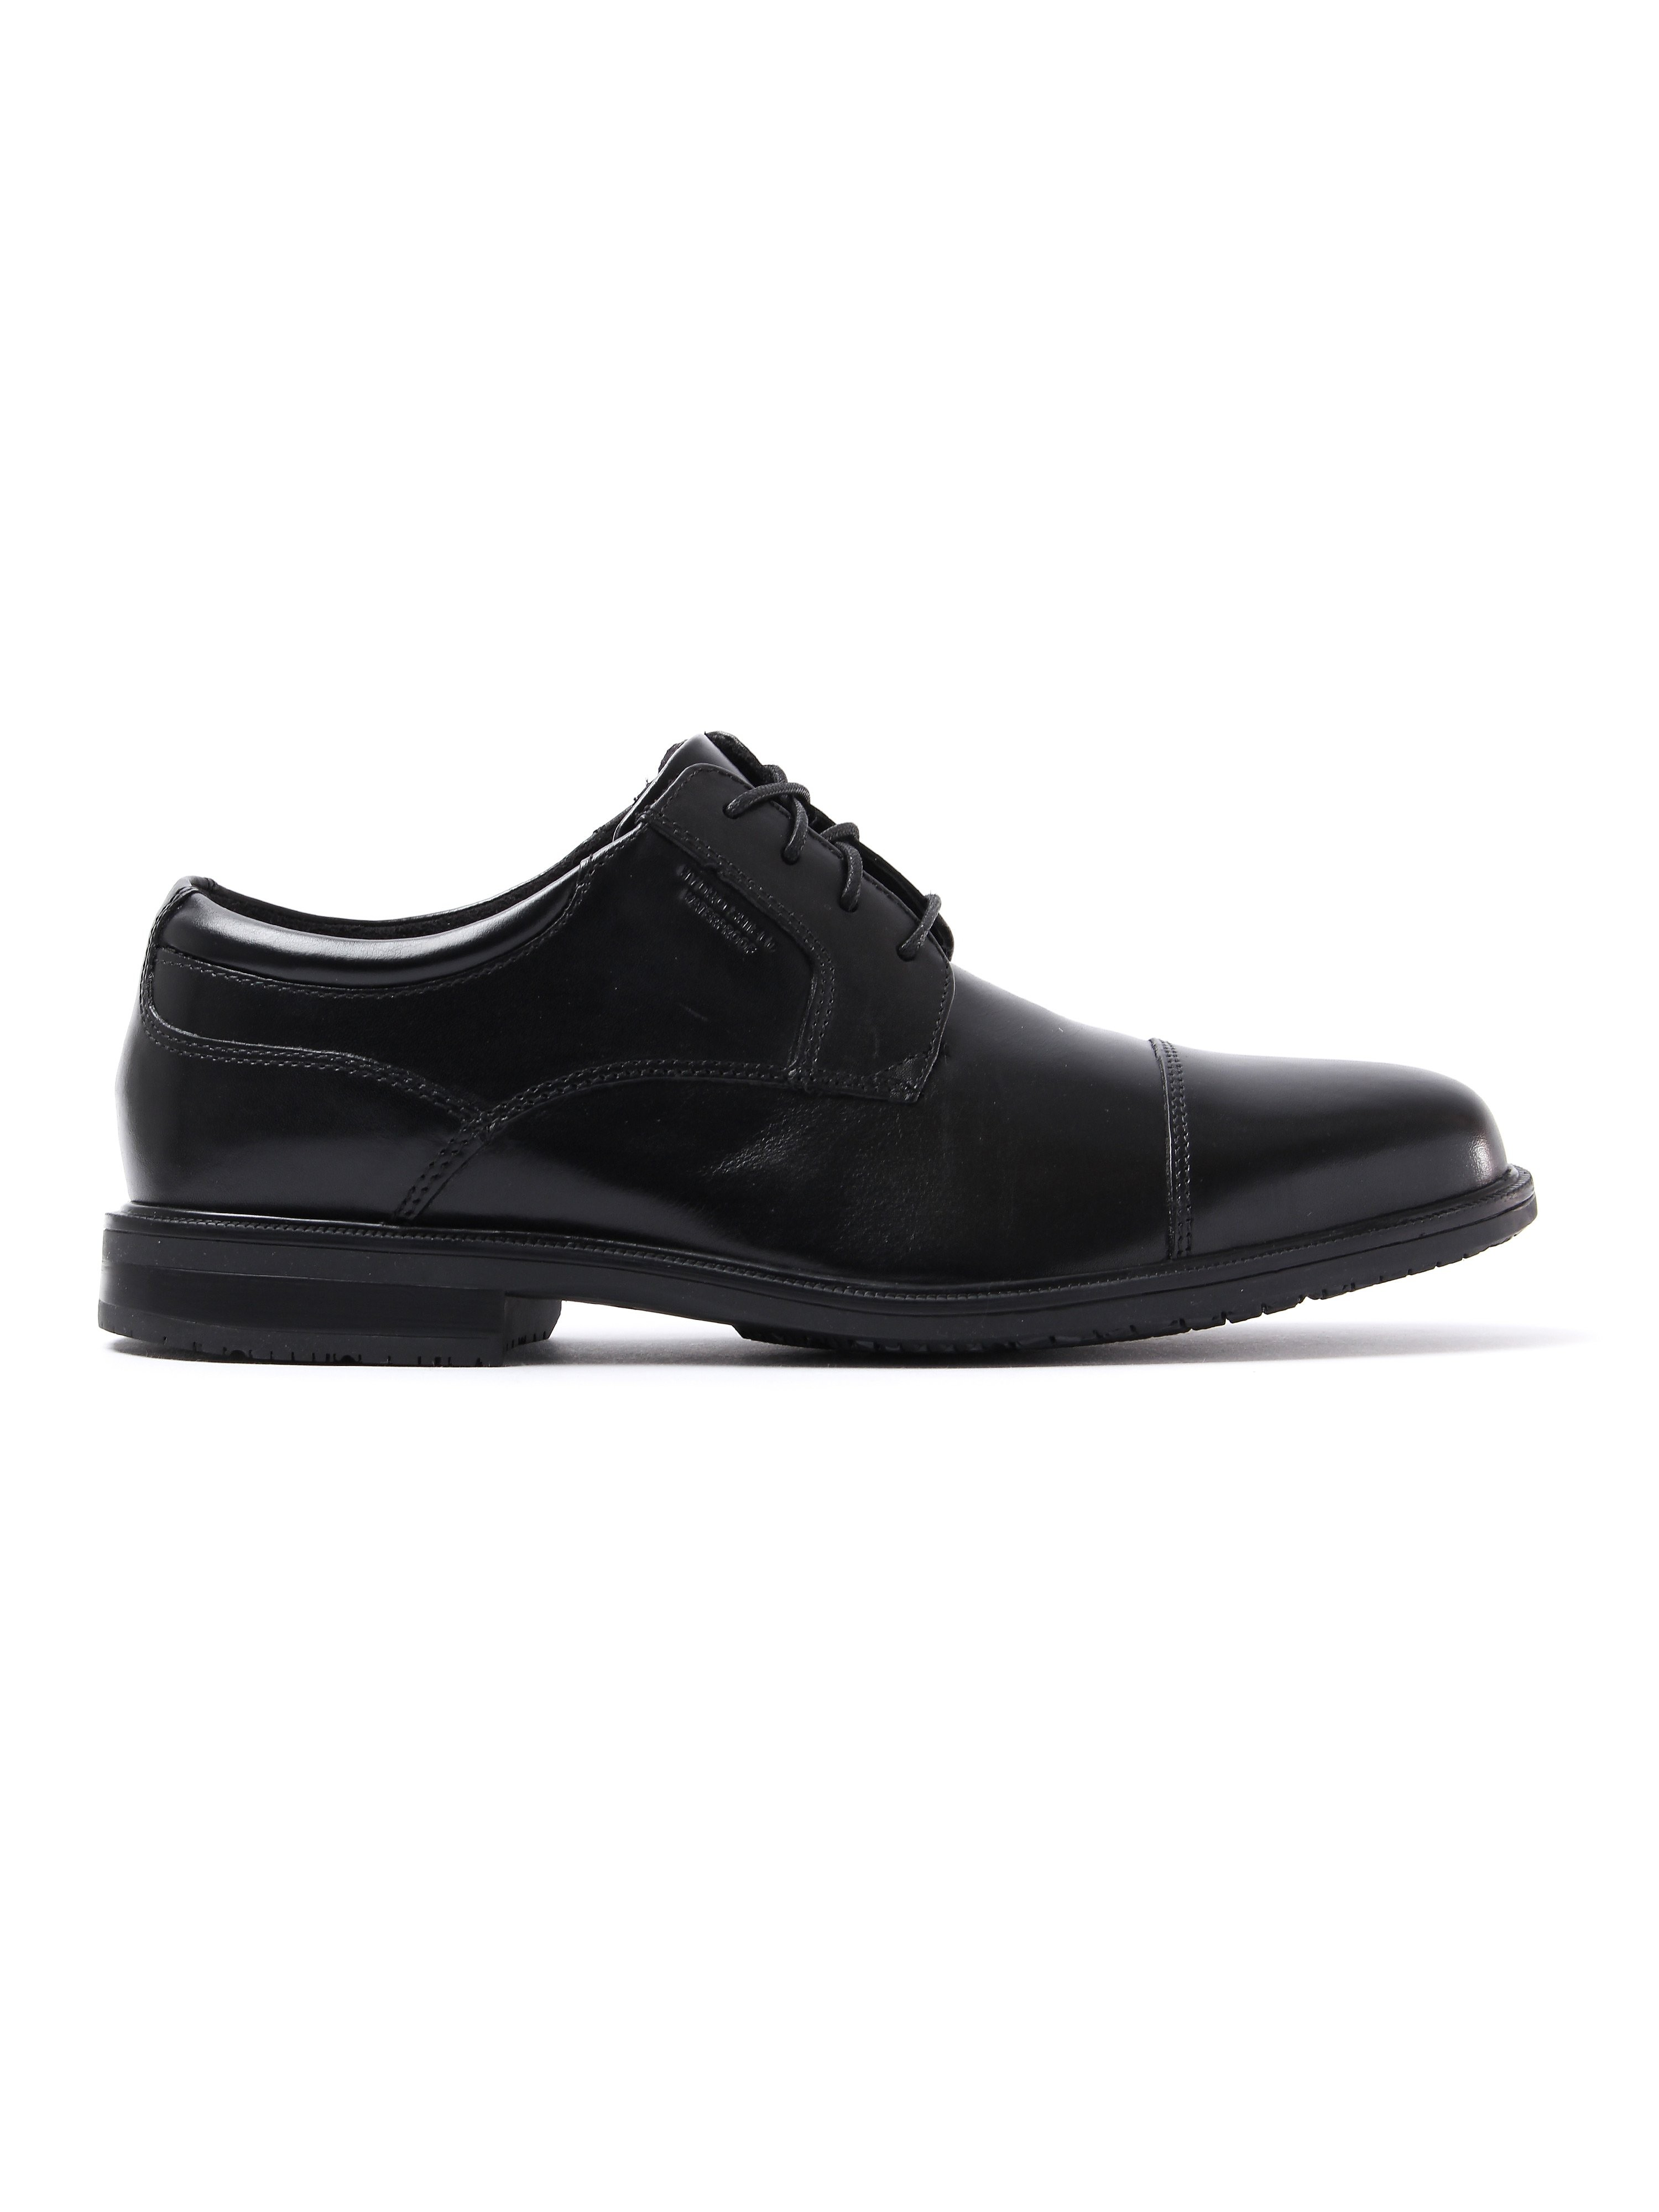 Rockport Mens Essential Detail II Cap Toe Leather Derby Shoes - Black